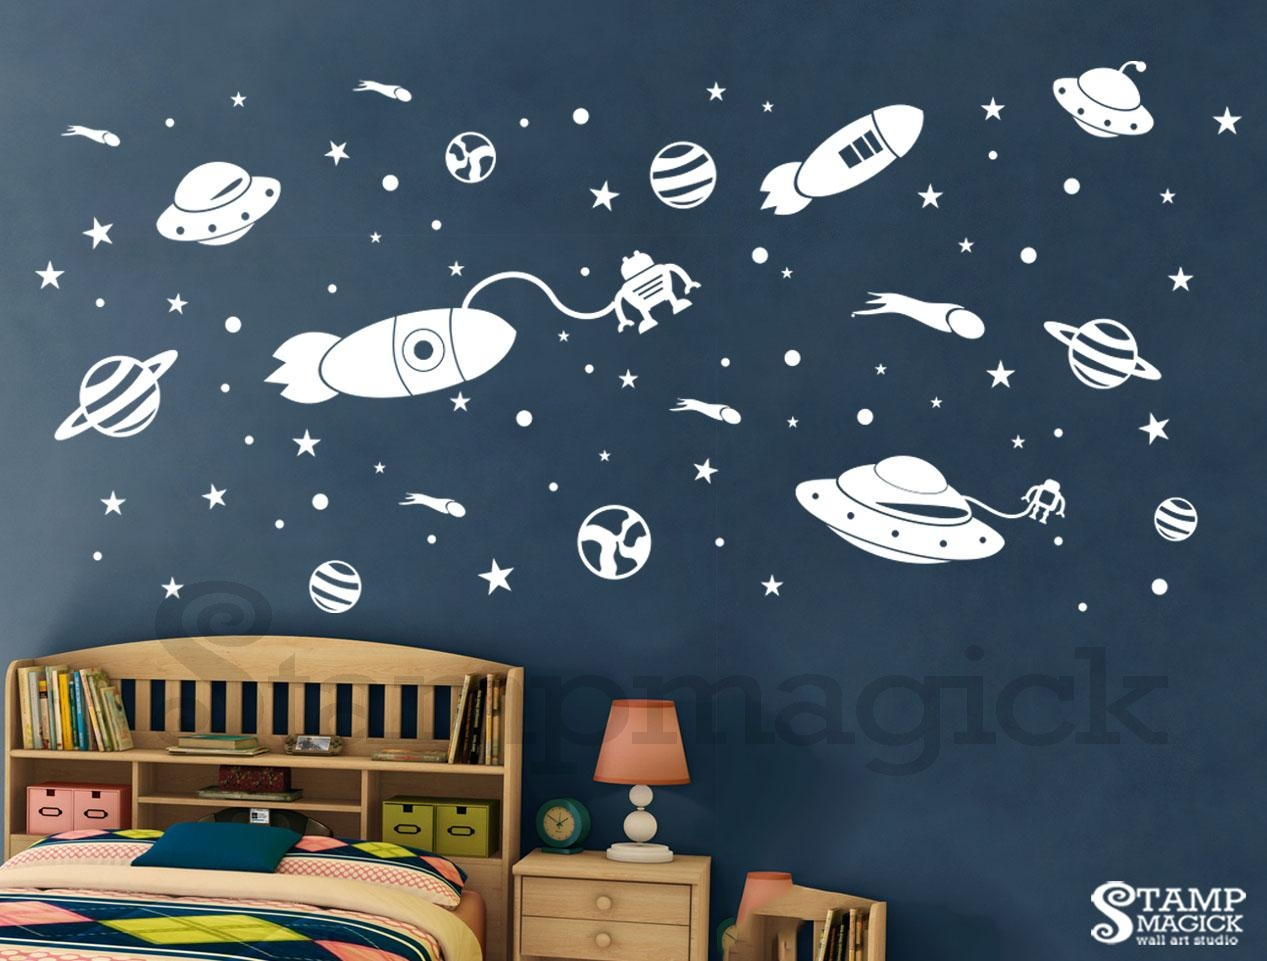 Outer Space Wall Decal, K321  Stampmagick Wall Decals In Outer Space Wall  Art (